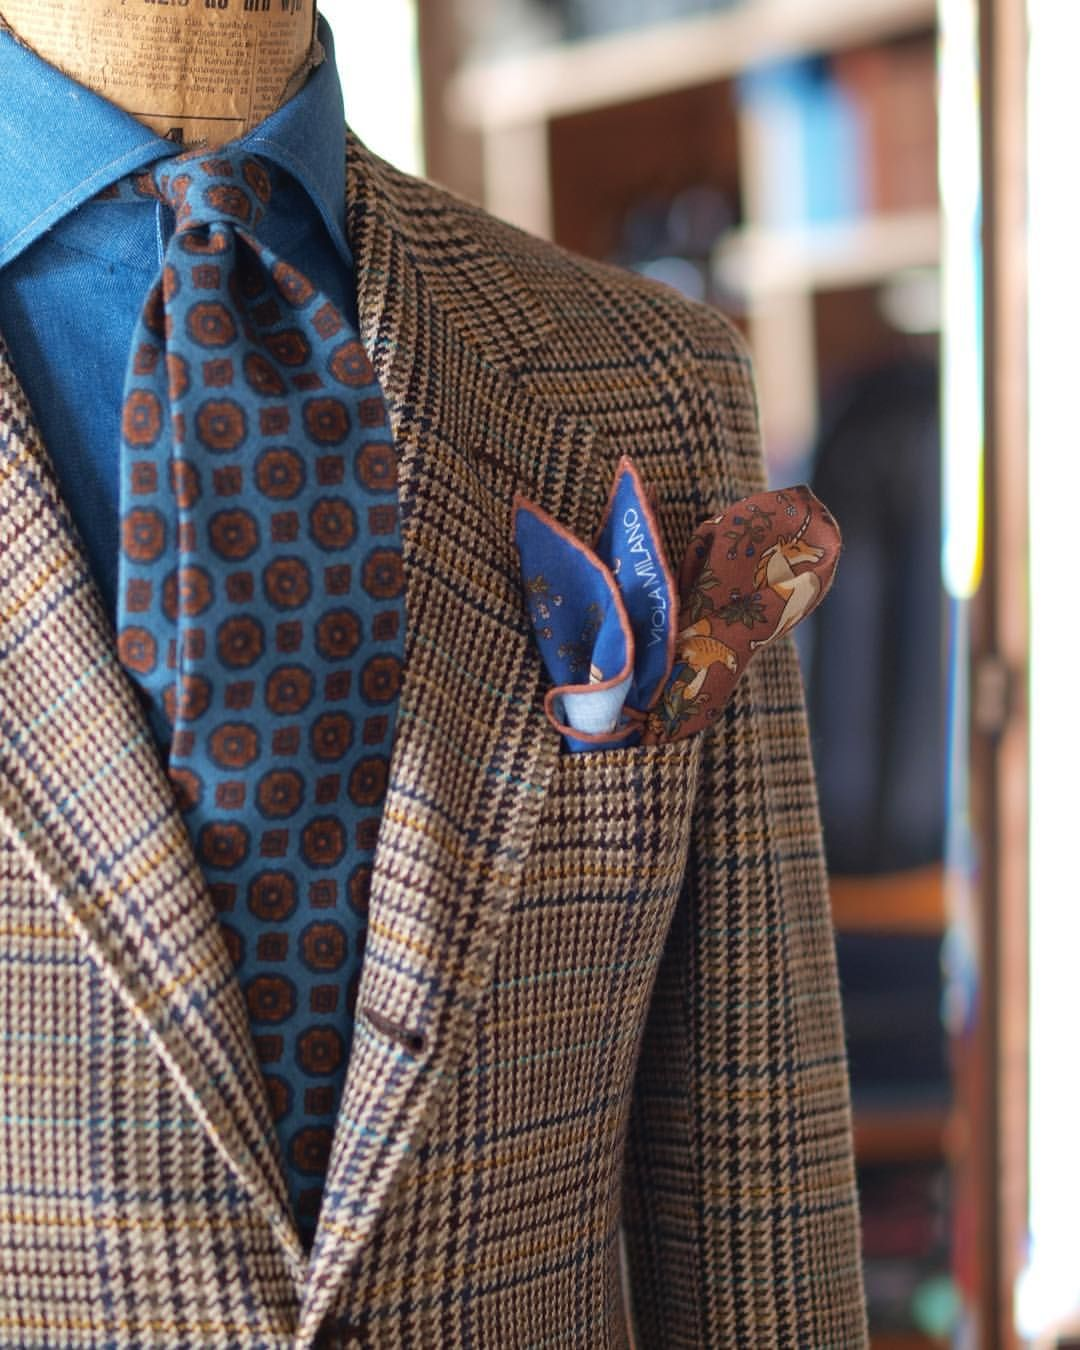 Details Make The Difference #8 | MenStyle1- Men's Style Blog